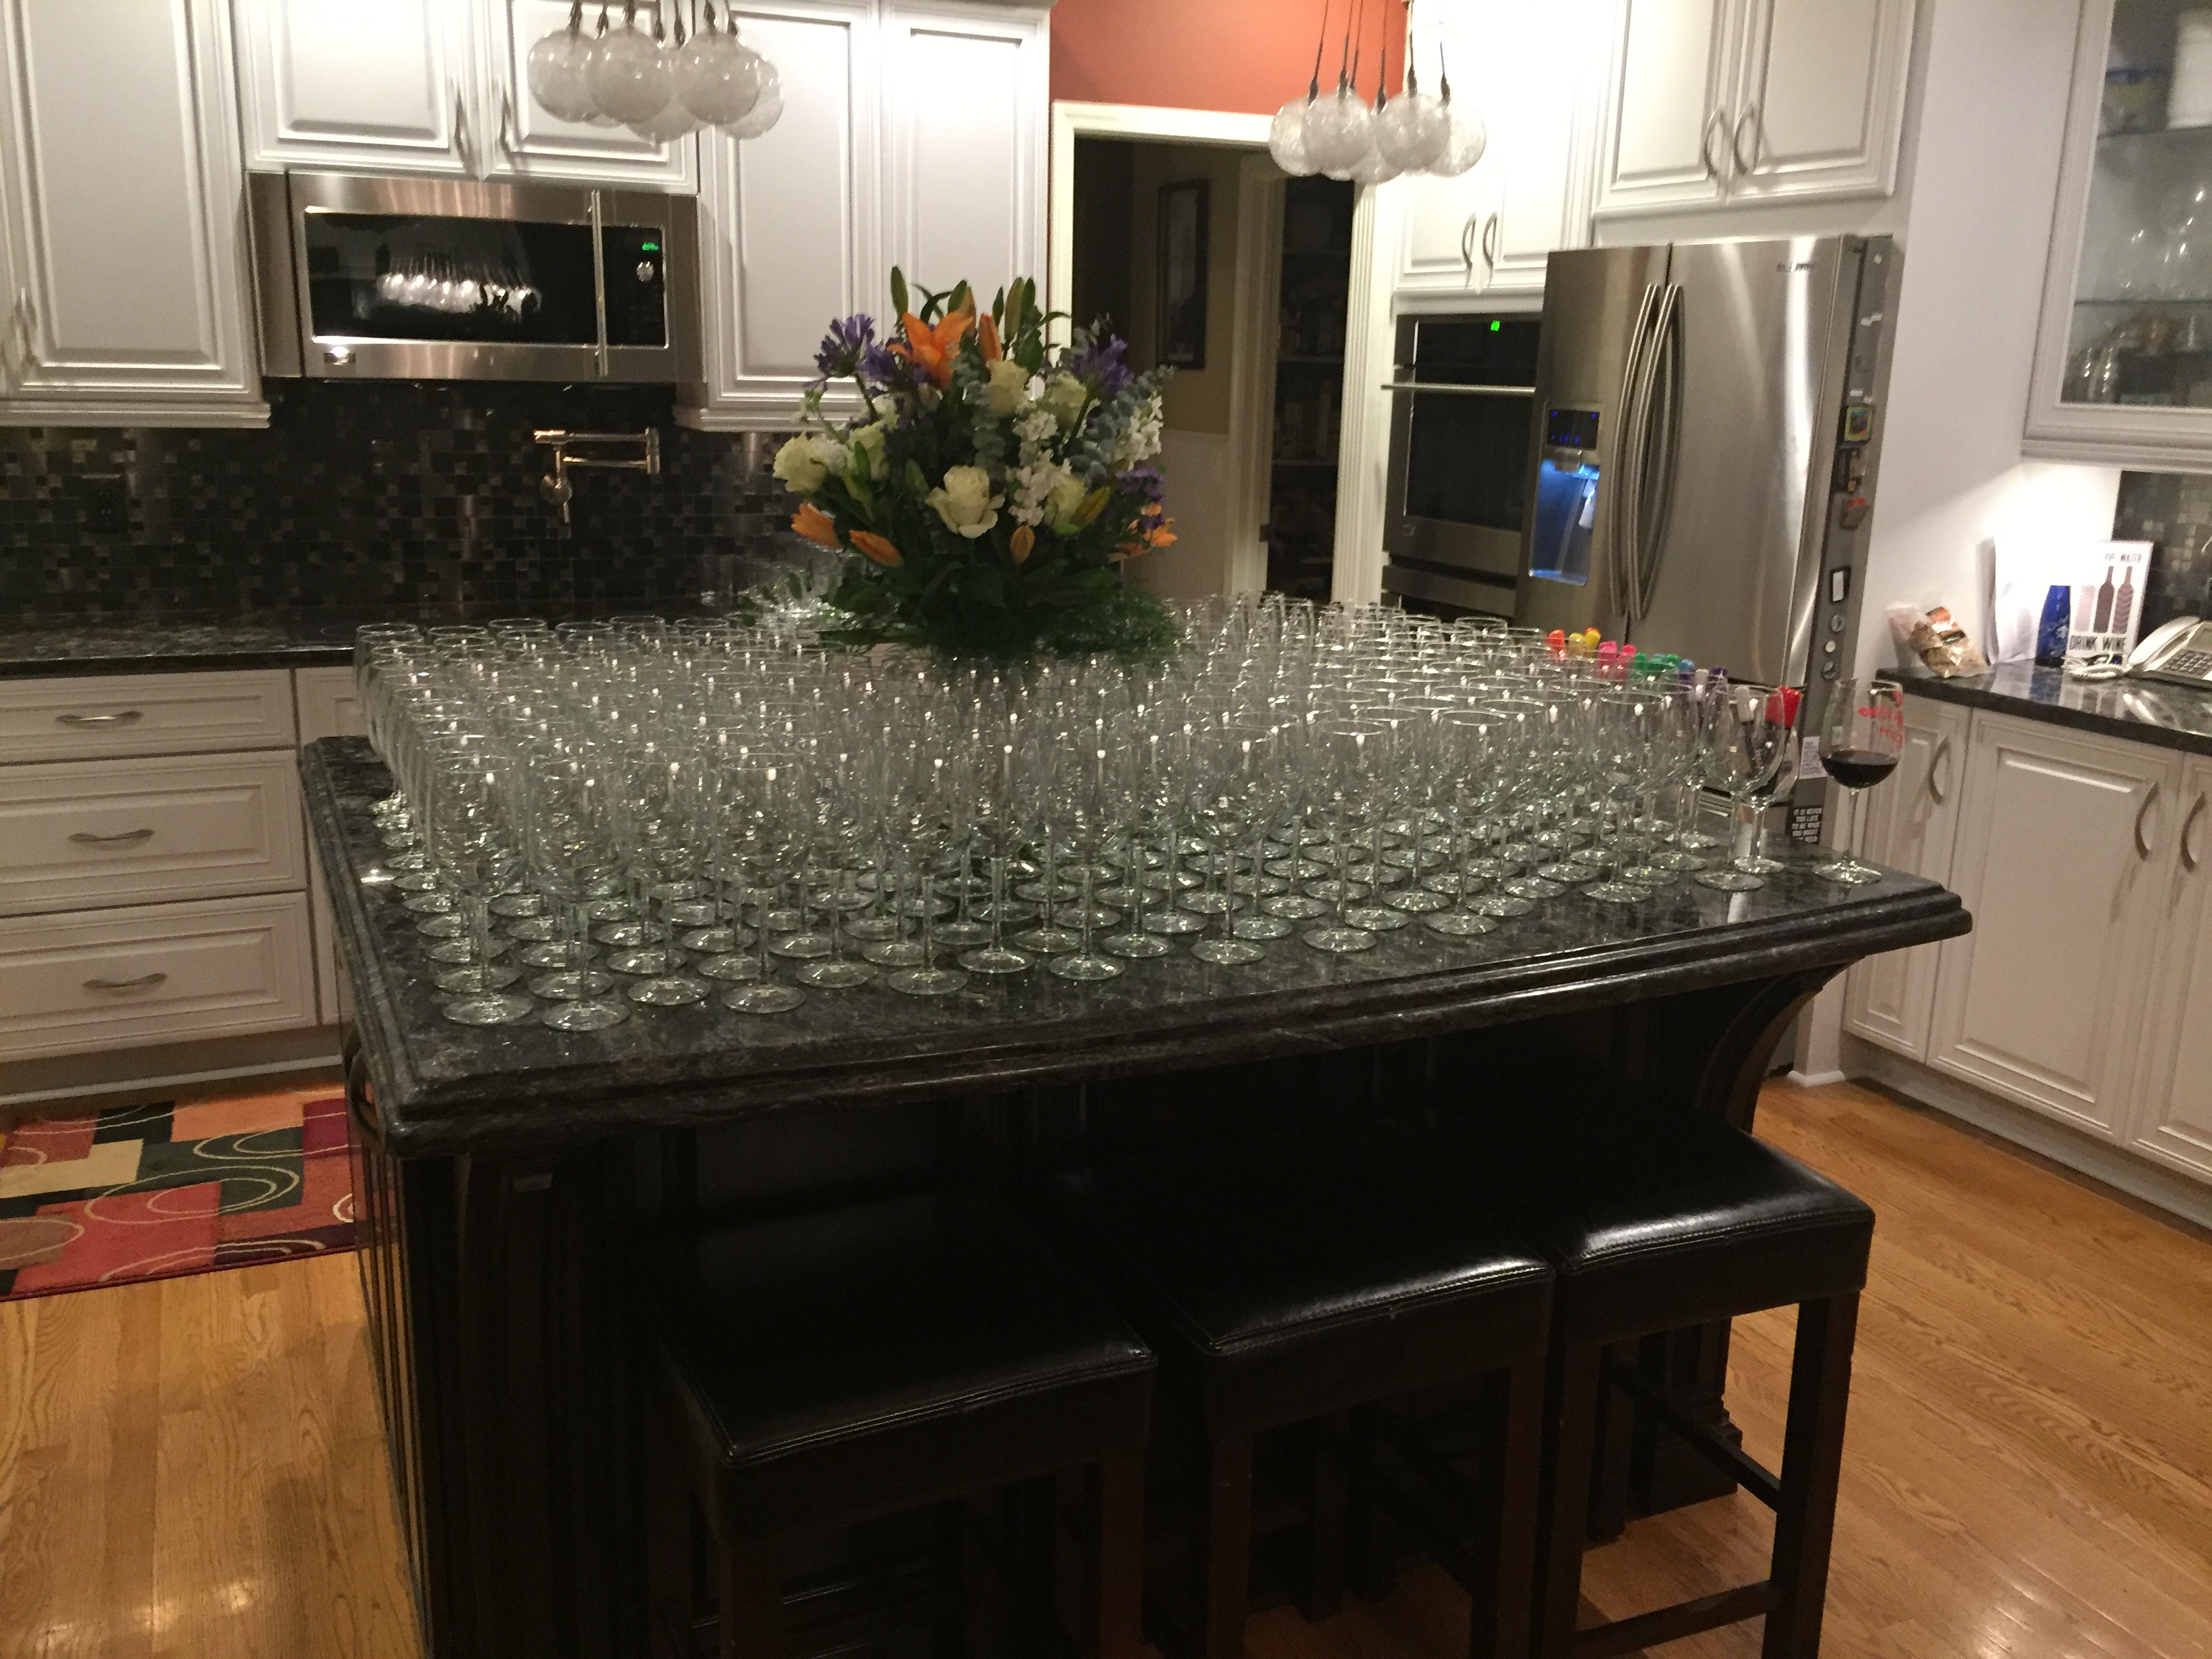 150 wine glasses, waiting for guests to arrive